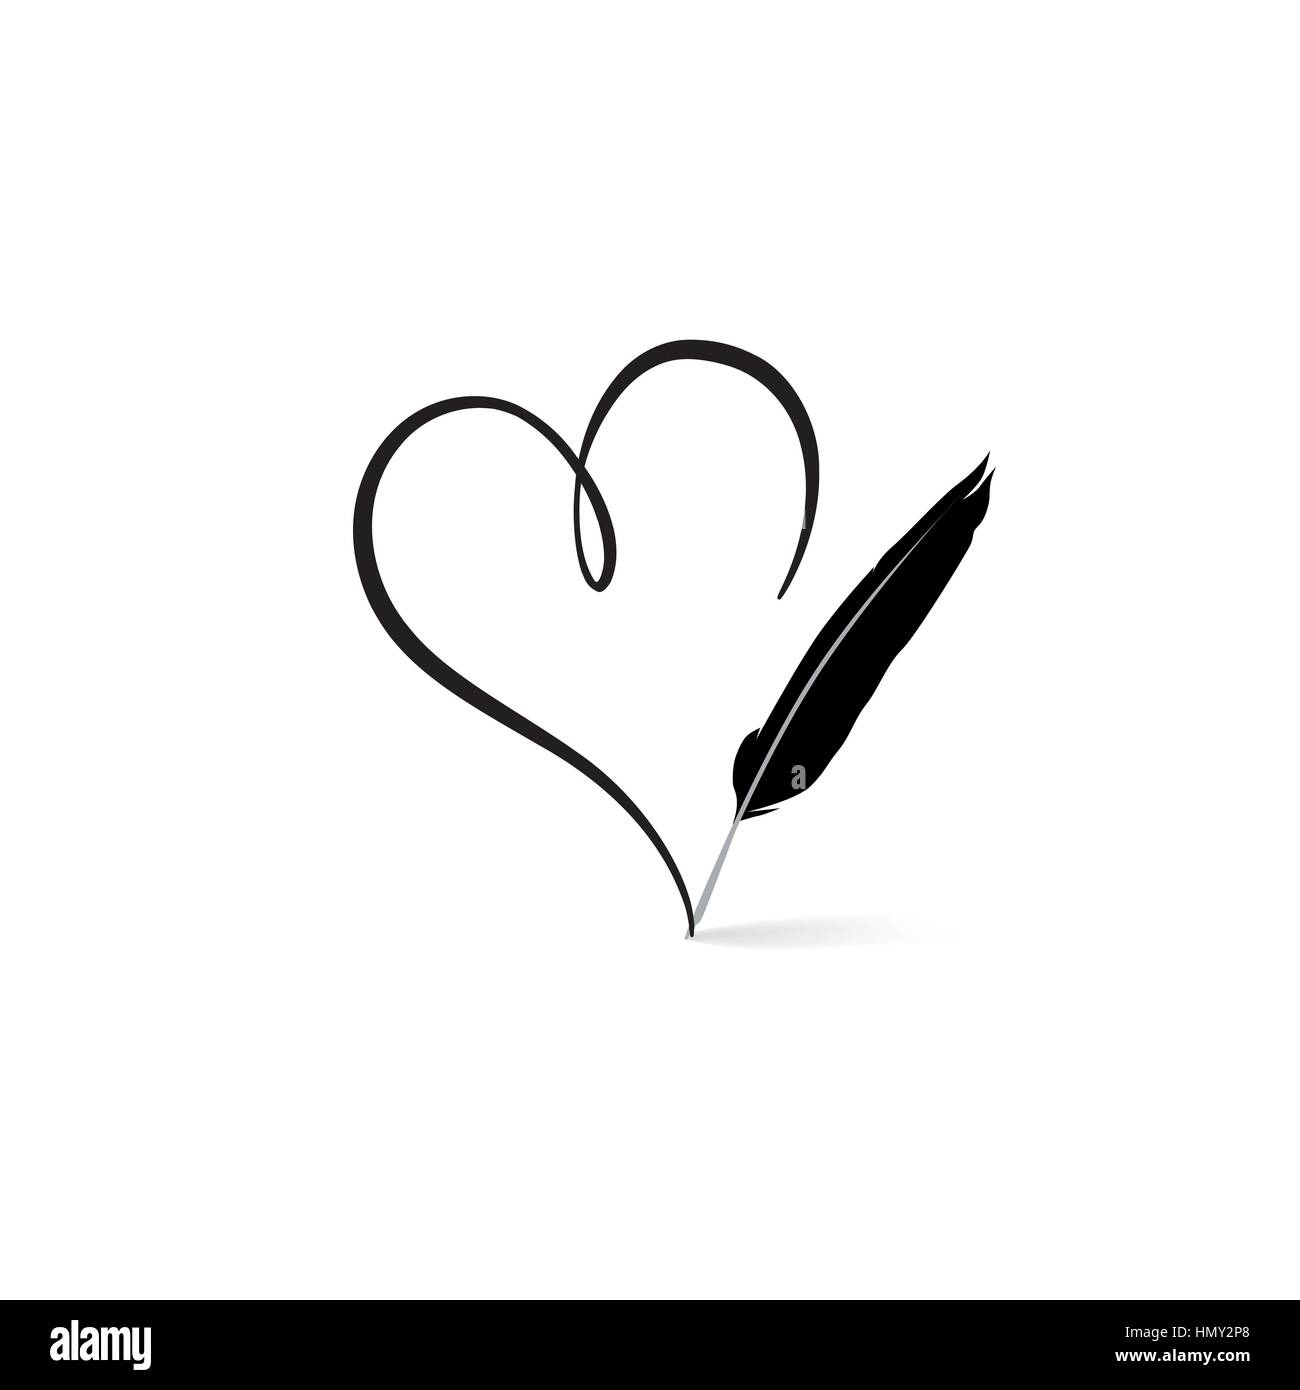 Love Heart Drawn By Feather Pen St Valentine S Day Greeting Card